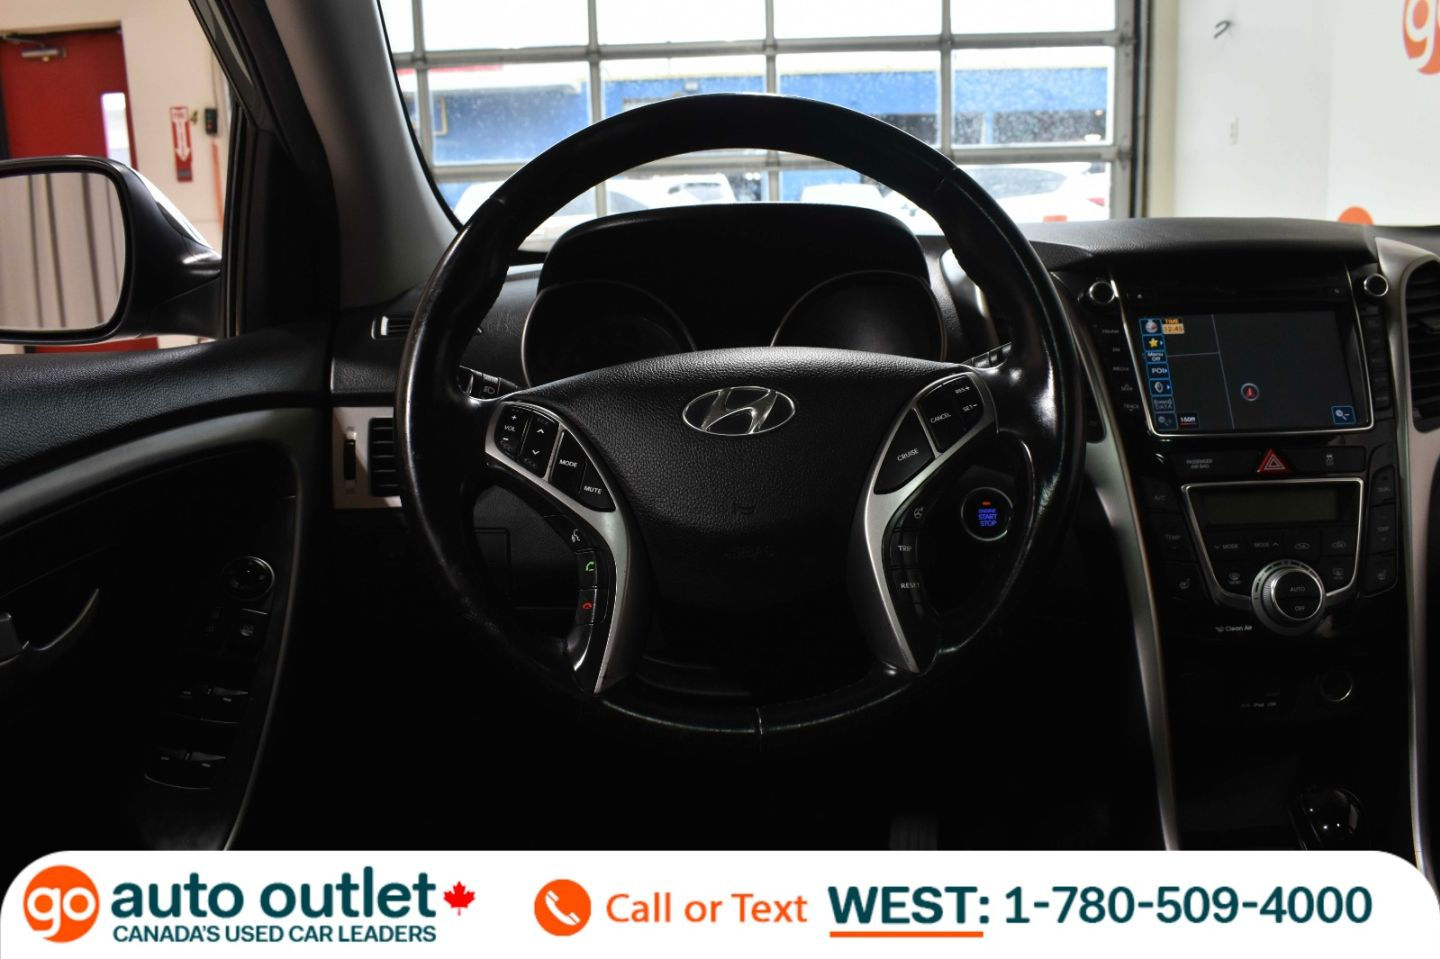 2013 Hyundai Elantra GT SE w/Tech Pkg for sale in Edmonton, Alberta